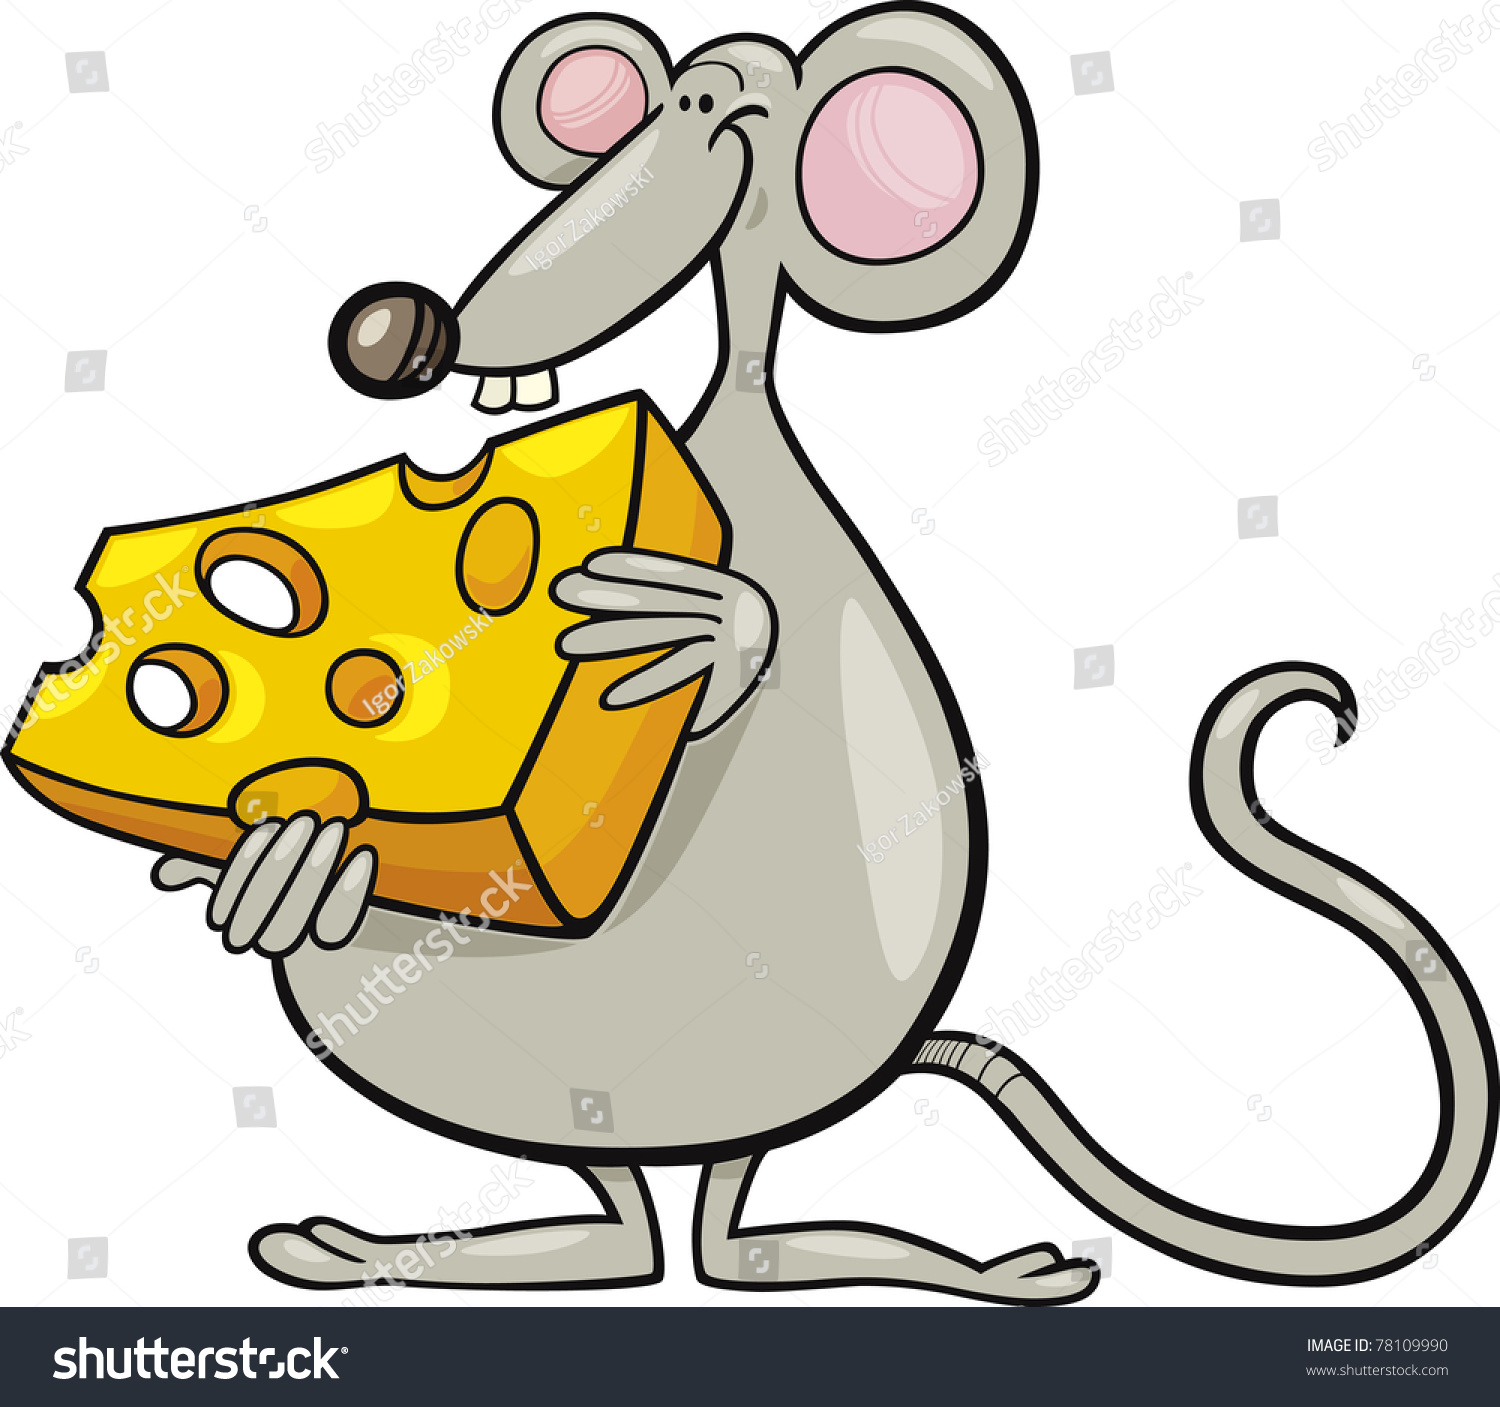 clipart mouse eating cheese - photo #36